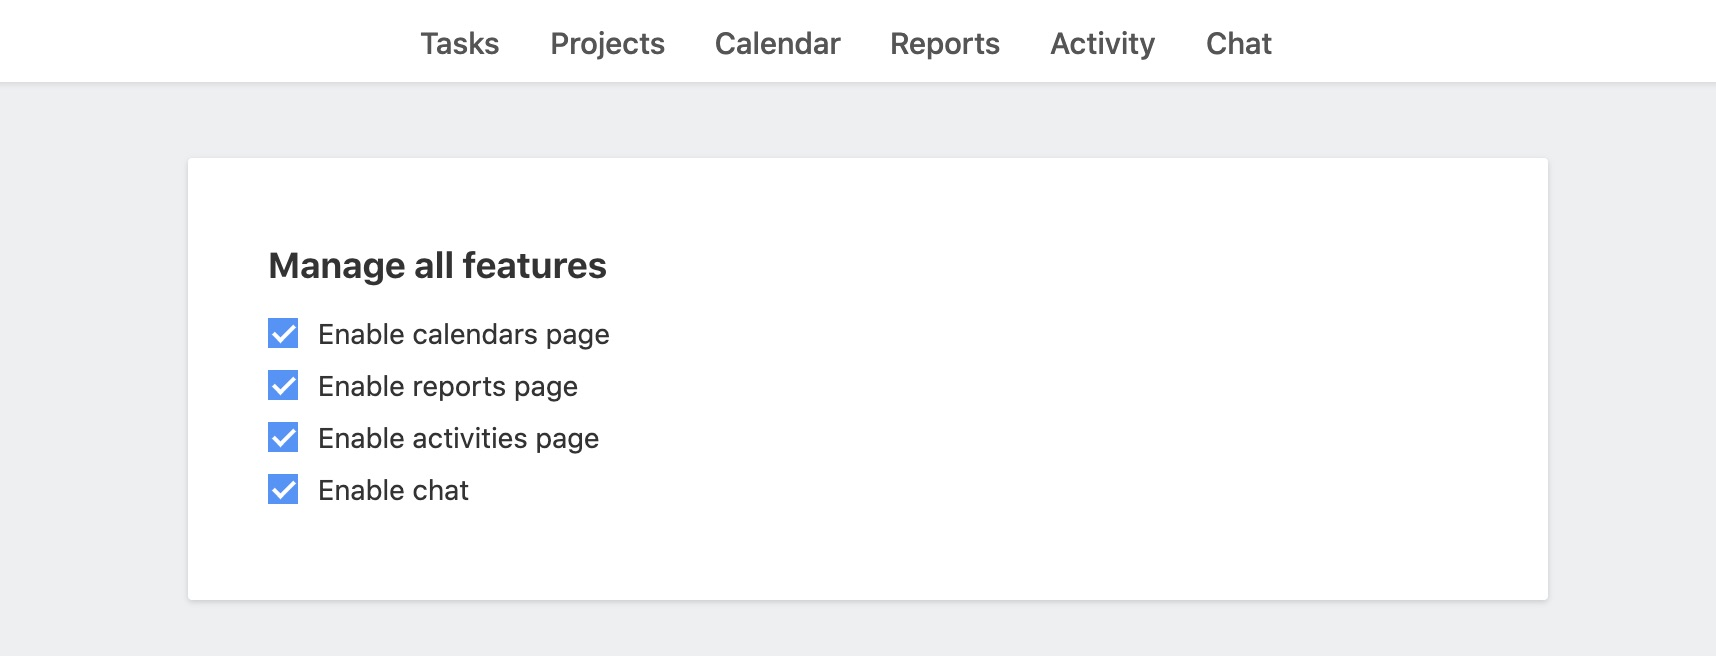 Manage features